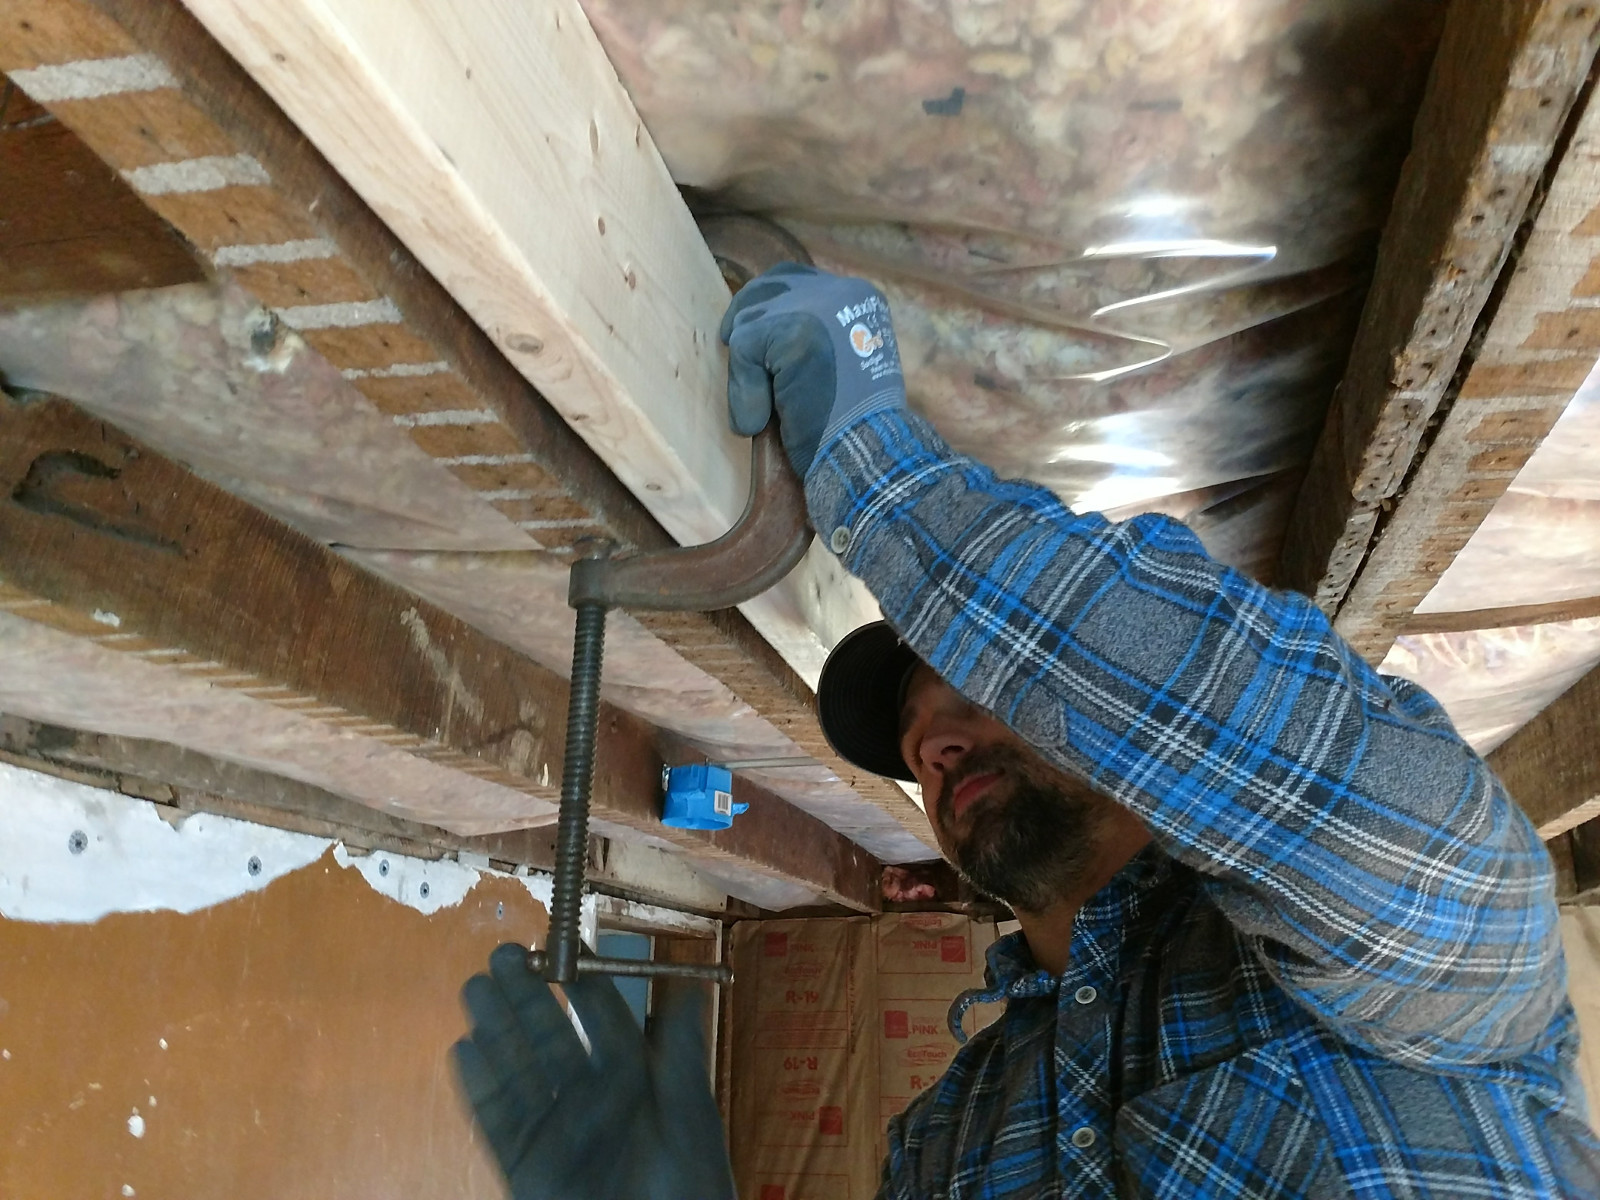 Nothing says fun like sawing through your ceiling joists.